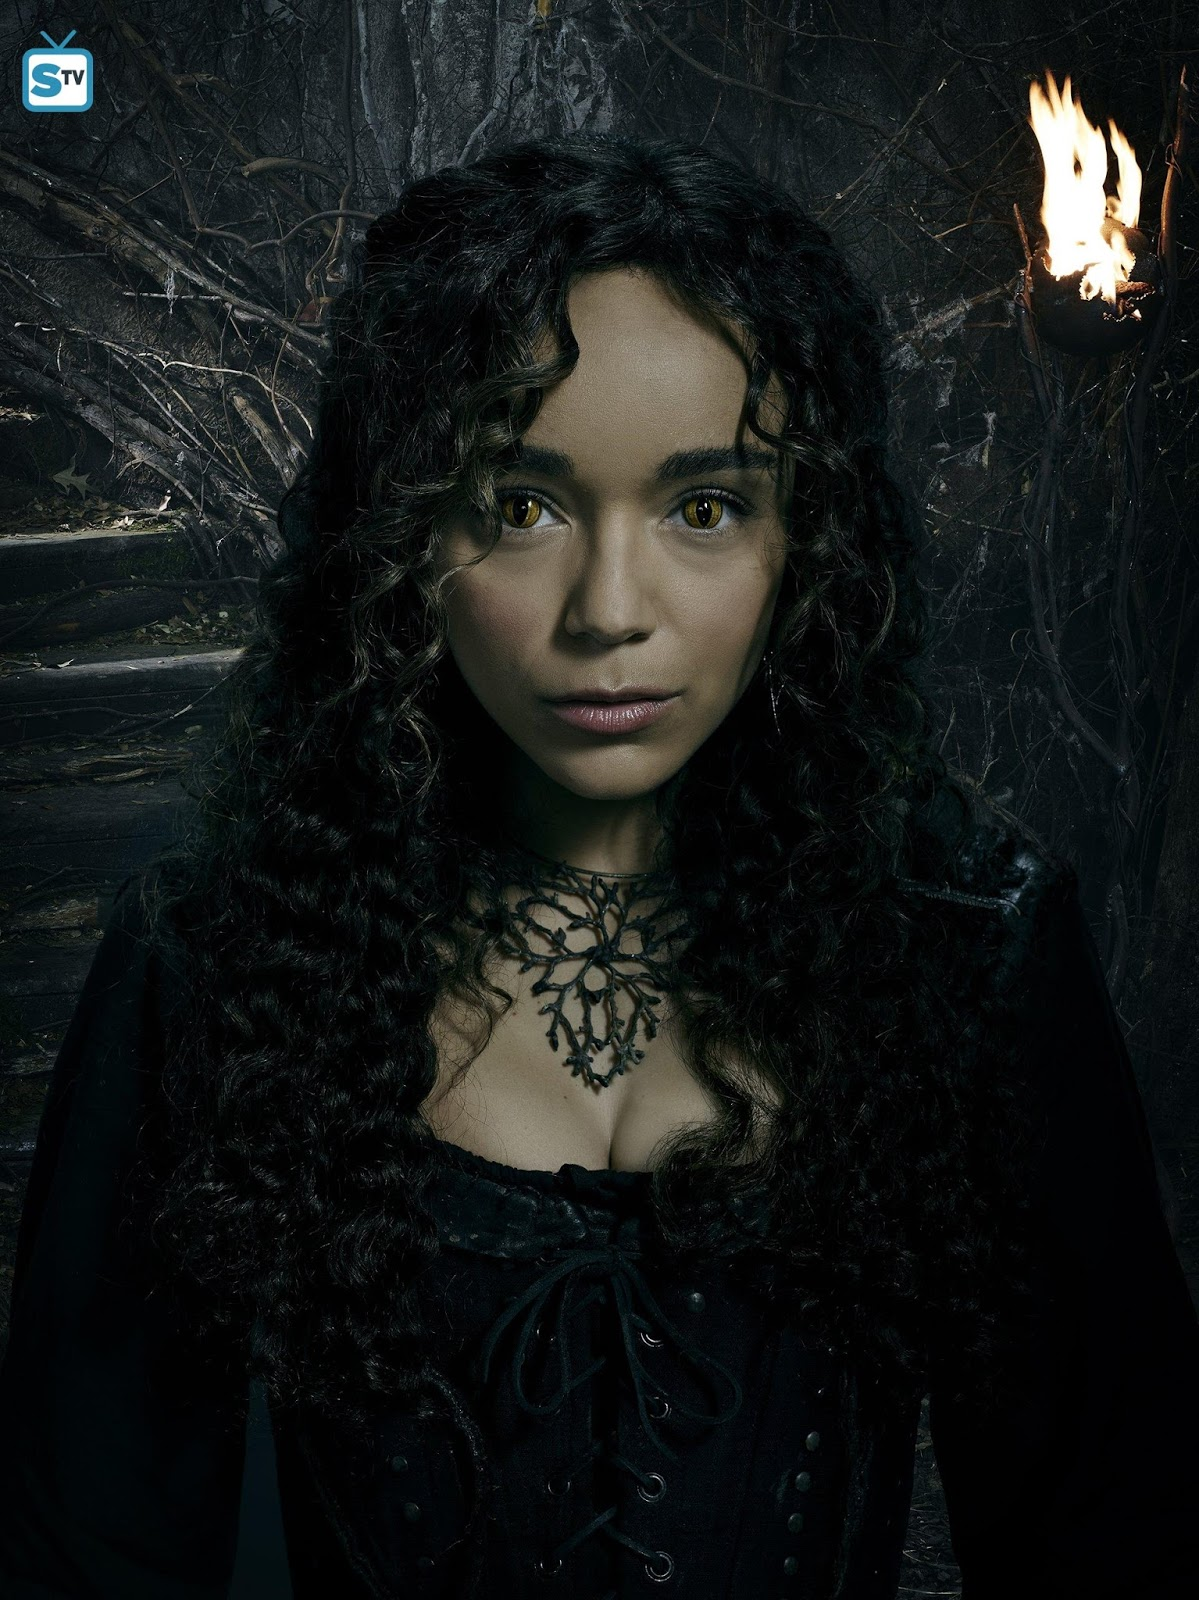 i tituba black witch of salem It is because of this that the most prominent themes of this novel to me are hat of oppression and feminism, which i find to be constantly tied together throughout.